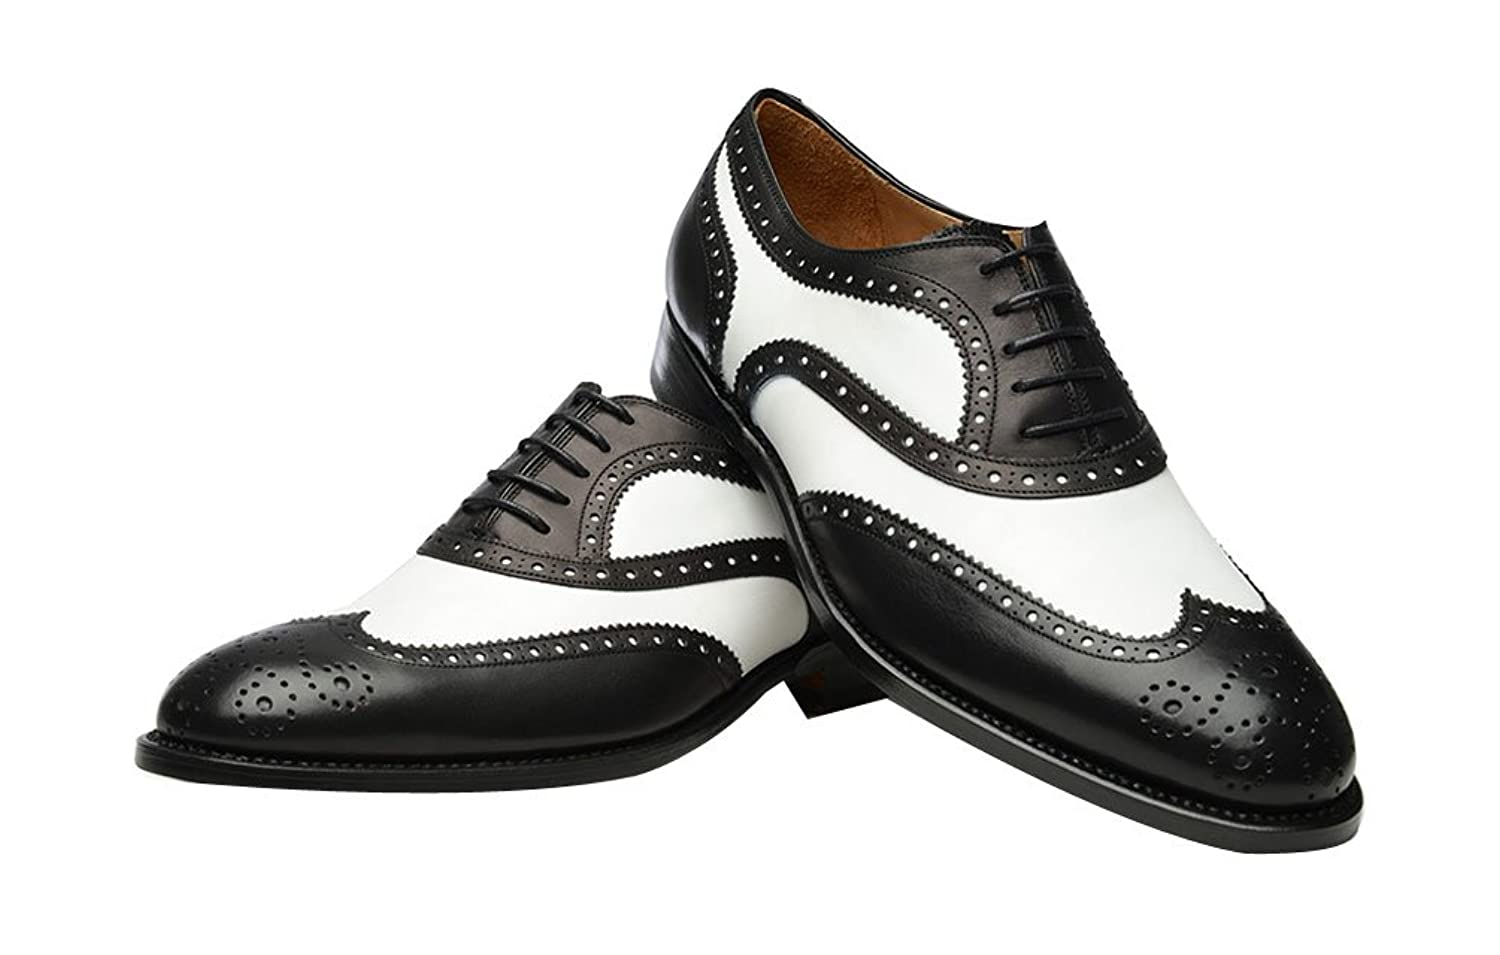 1920s Boardwalk Empire Shoes ROYAL WIND Geninue Leather Spectator Shoes Mens Black White Lace up Wing Tip Perforated Dress Shoes $79.99 AT vintagedancer.com